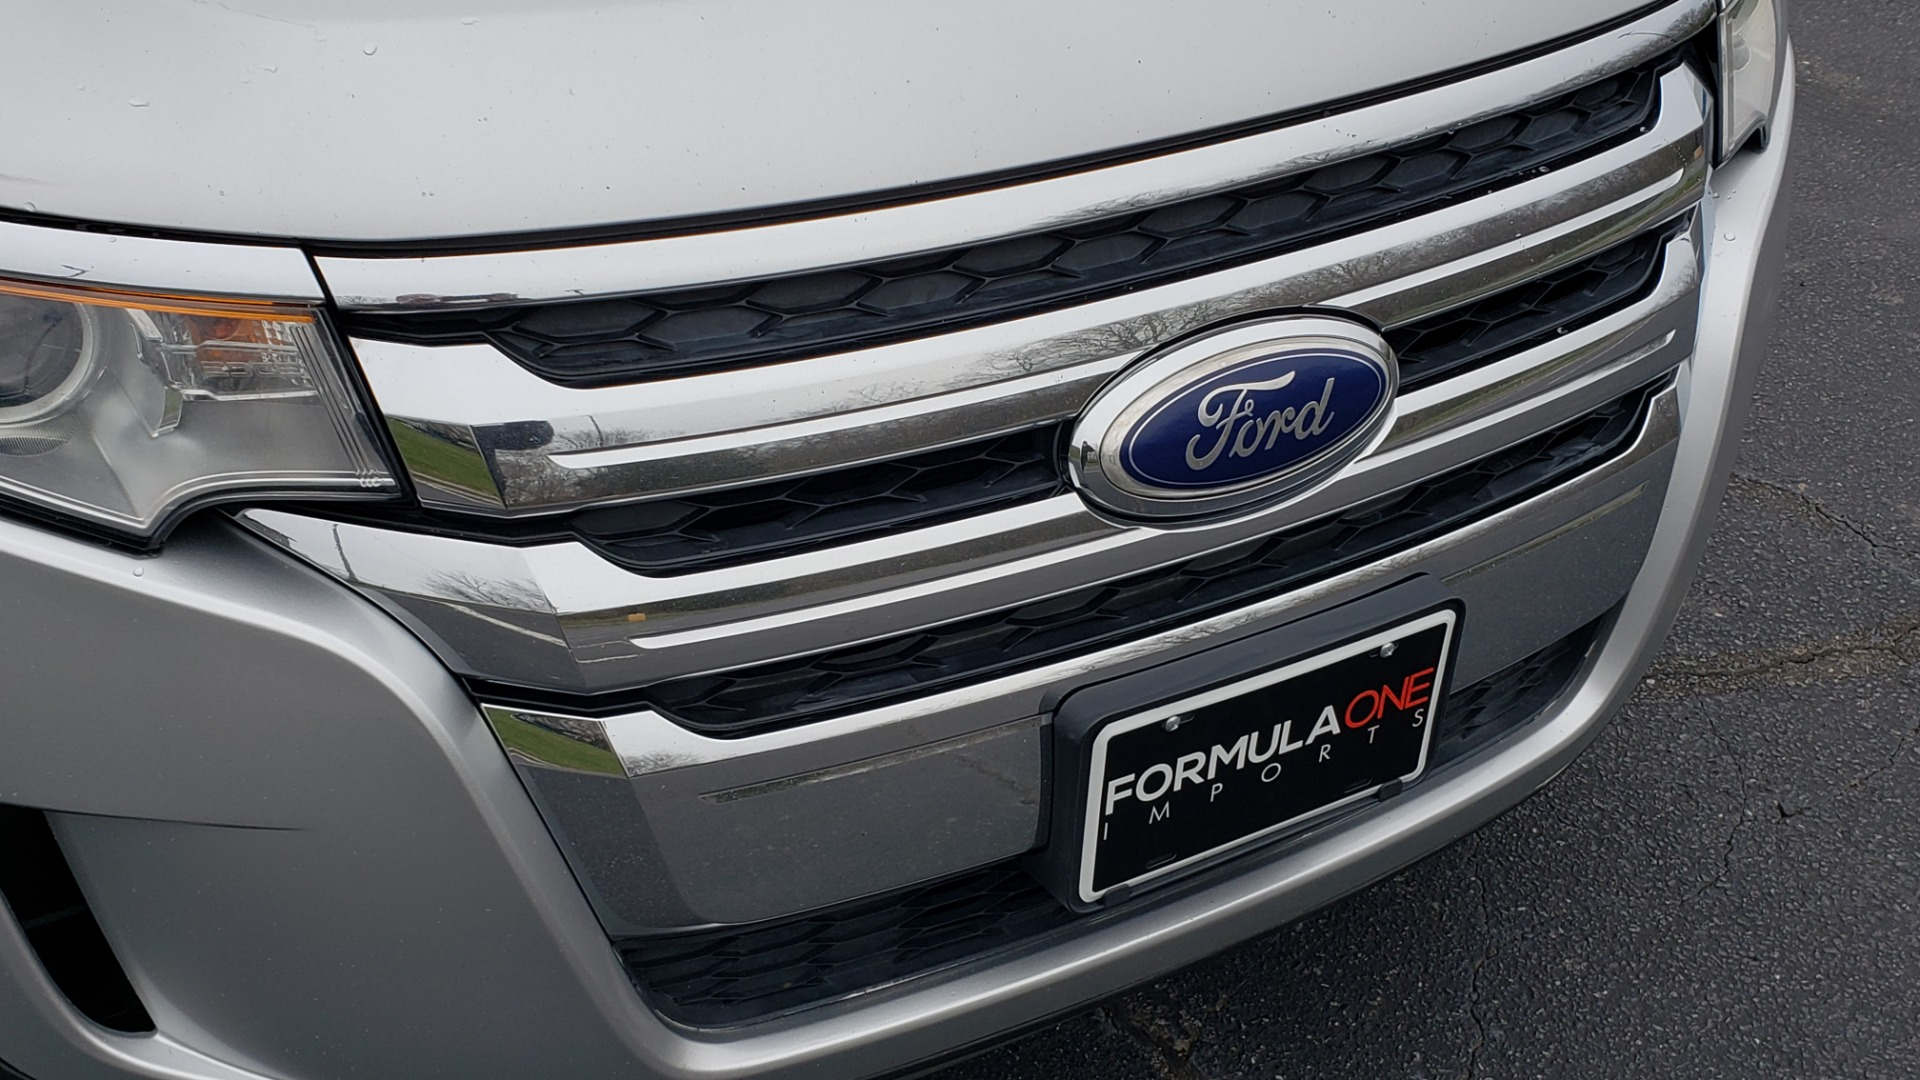 Used 2013 Ford EDGE SE / AWD / 18 IN WHEELS / SYNC / 3.5L V6 / AUTO for sale Sold at Formula Imports in Charlotte NC 28227 9